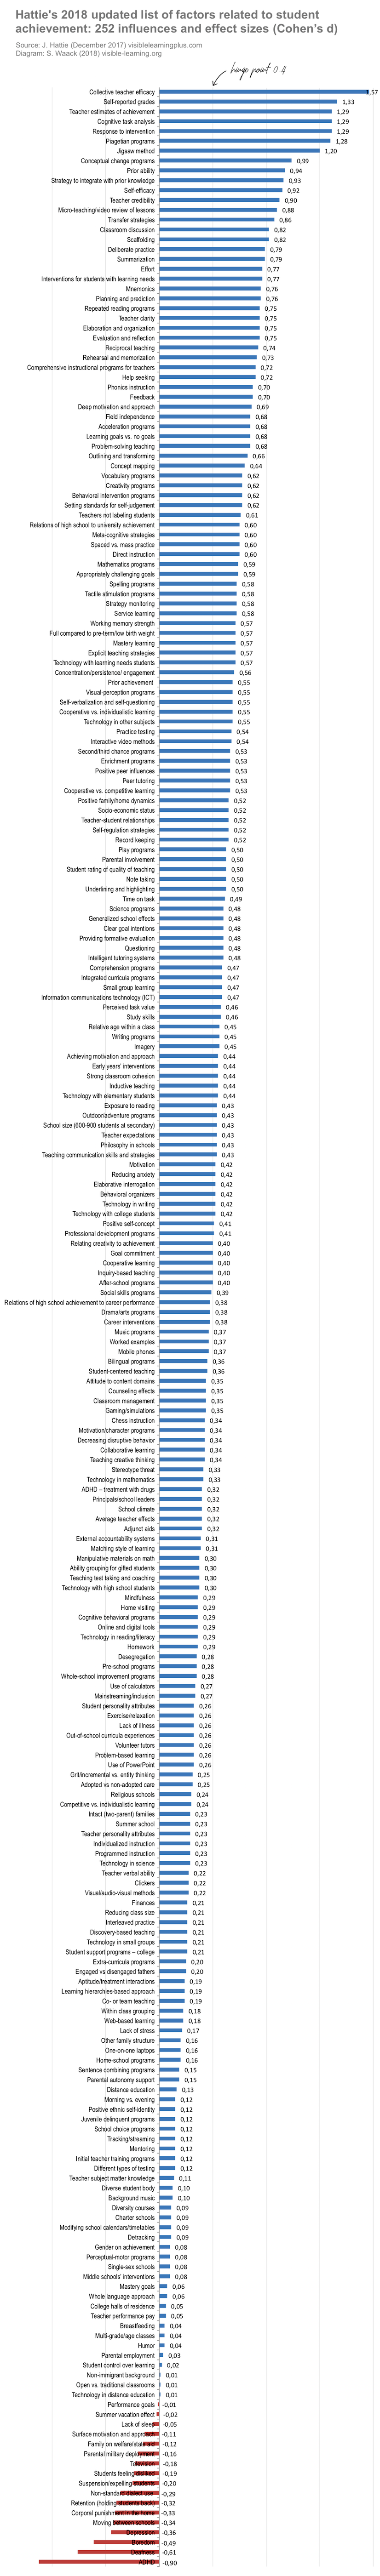 Hattie Ranking: 252 Influences And Effect Sizes Related To Student Achievement